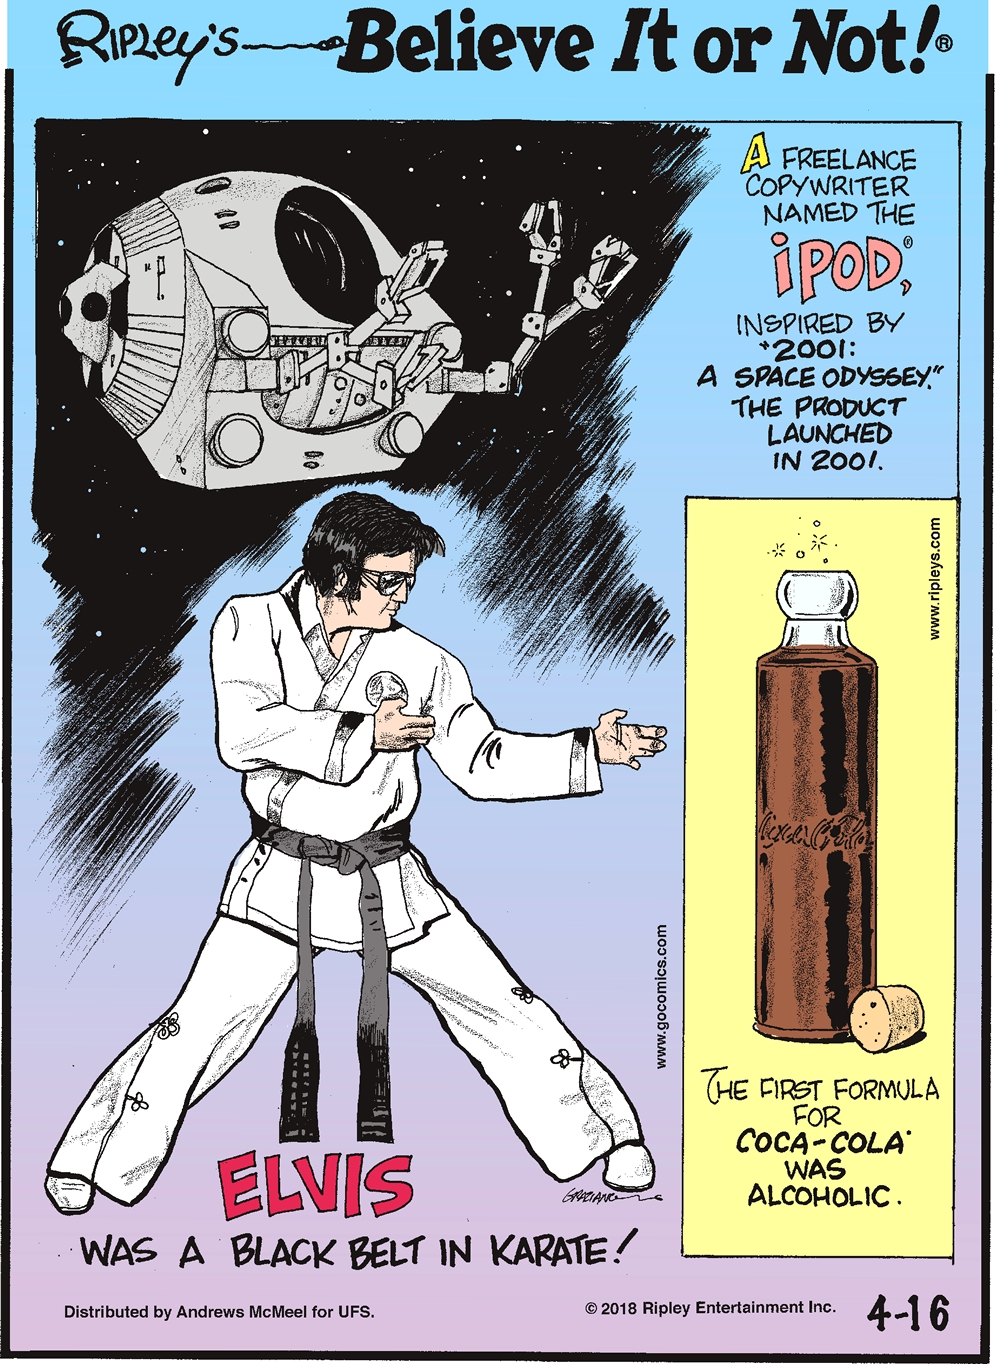 """A freelance copywriter named the iPod, inspired by """"2001: A Space Odyssey."""" The product launched in 2001.-------------------- Elvis was a black belt in karate!-------------------- The first formula for Coca-Cola was alcoholic."""